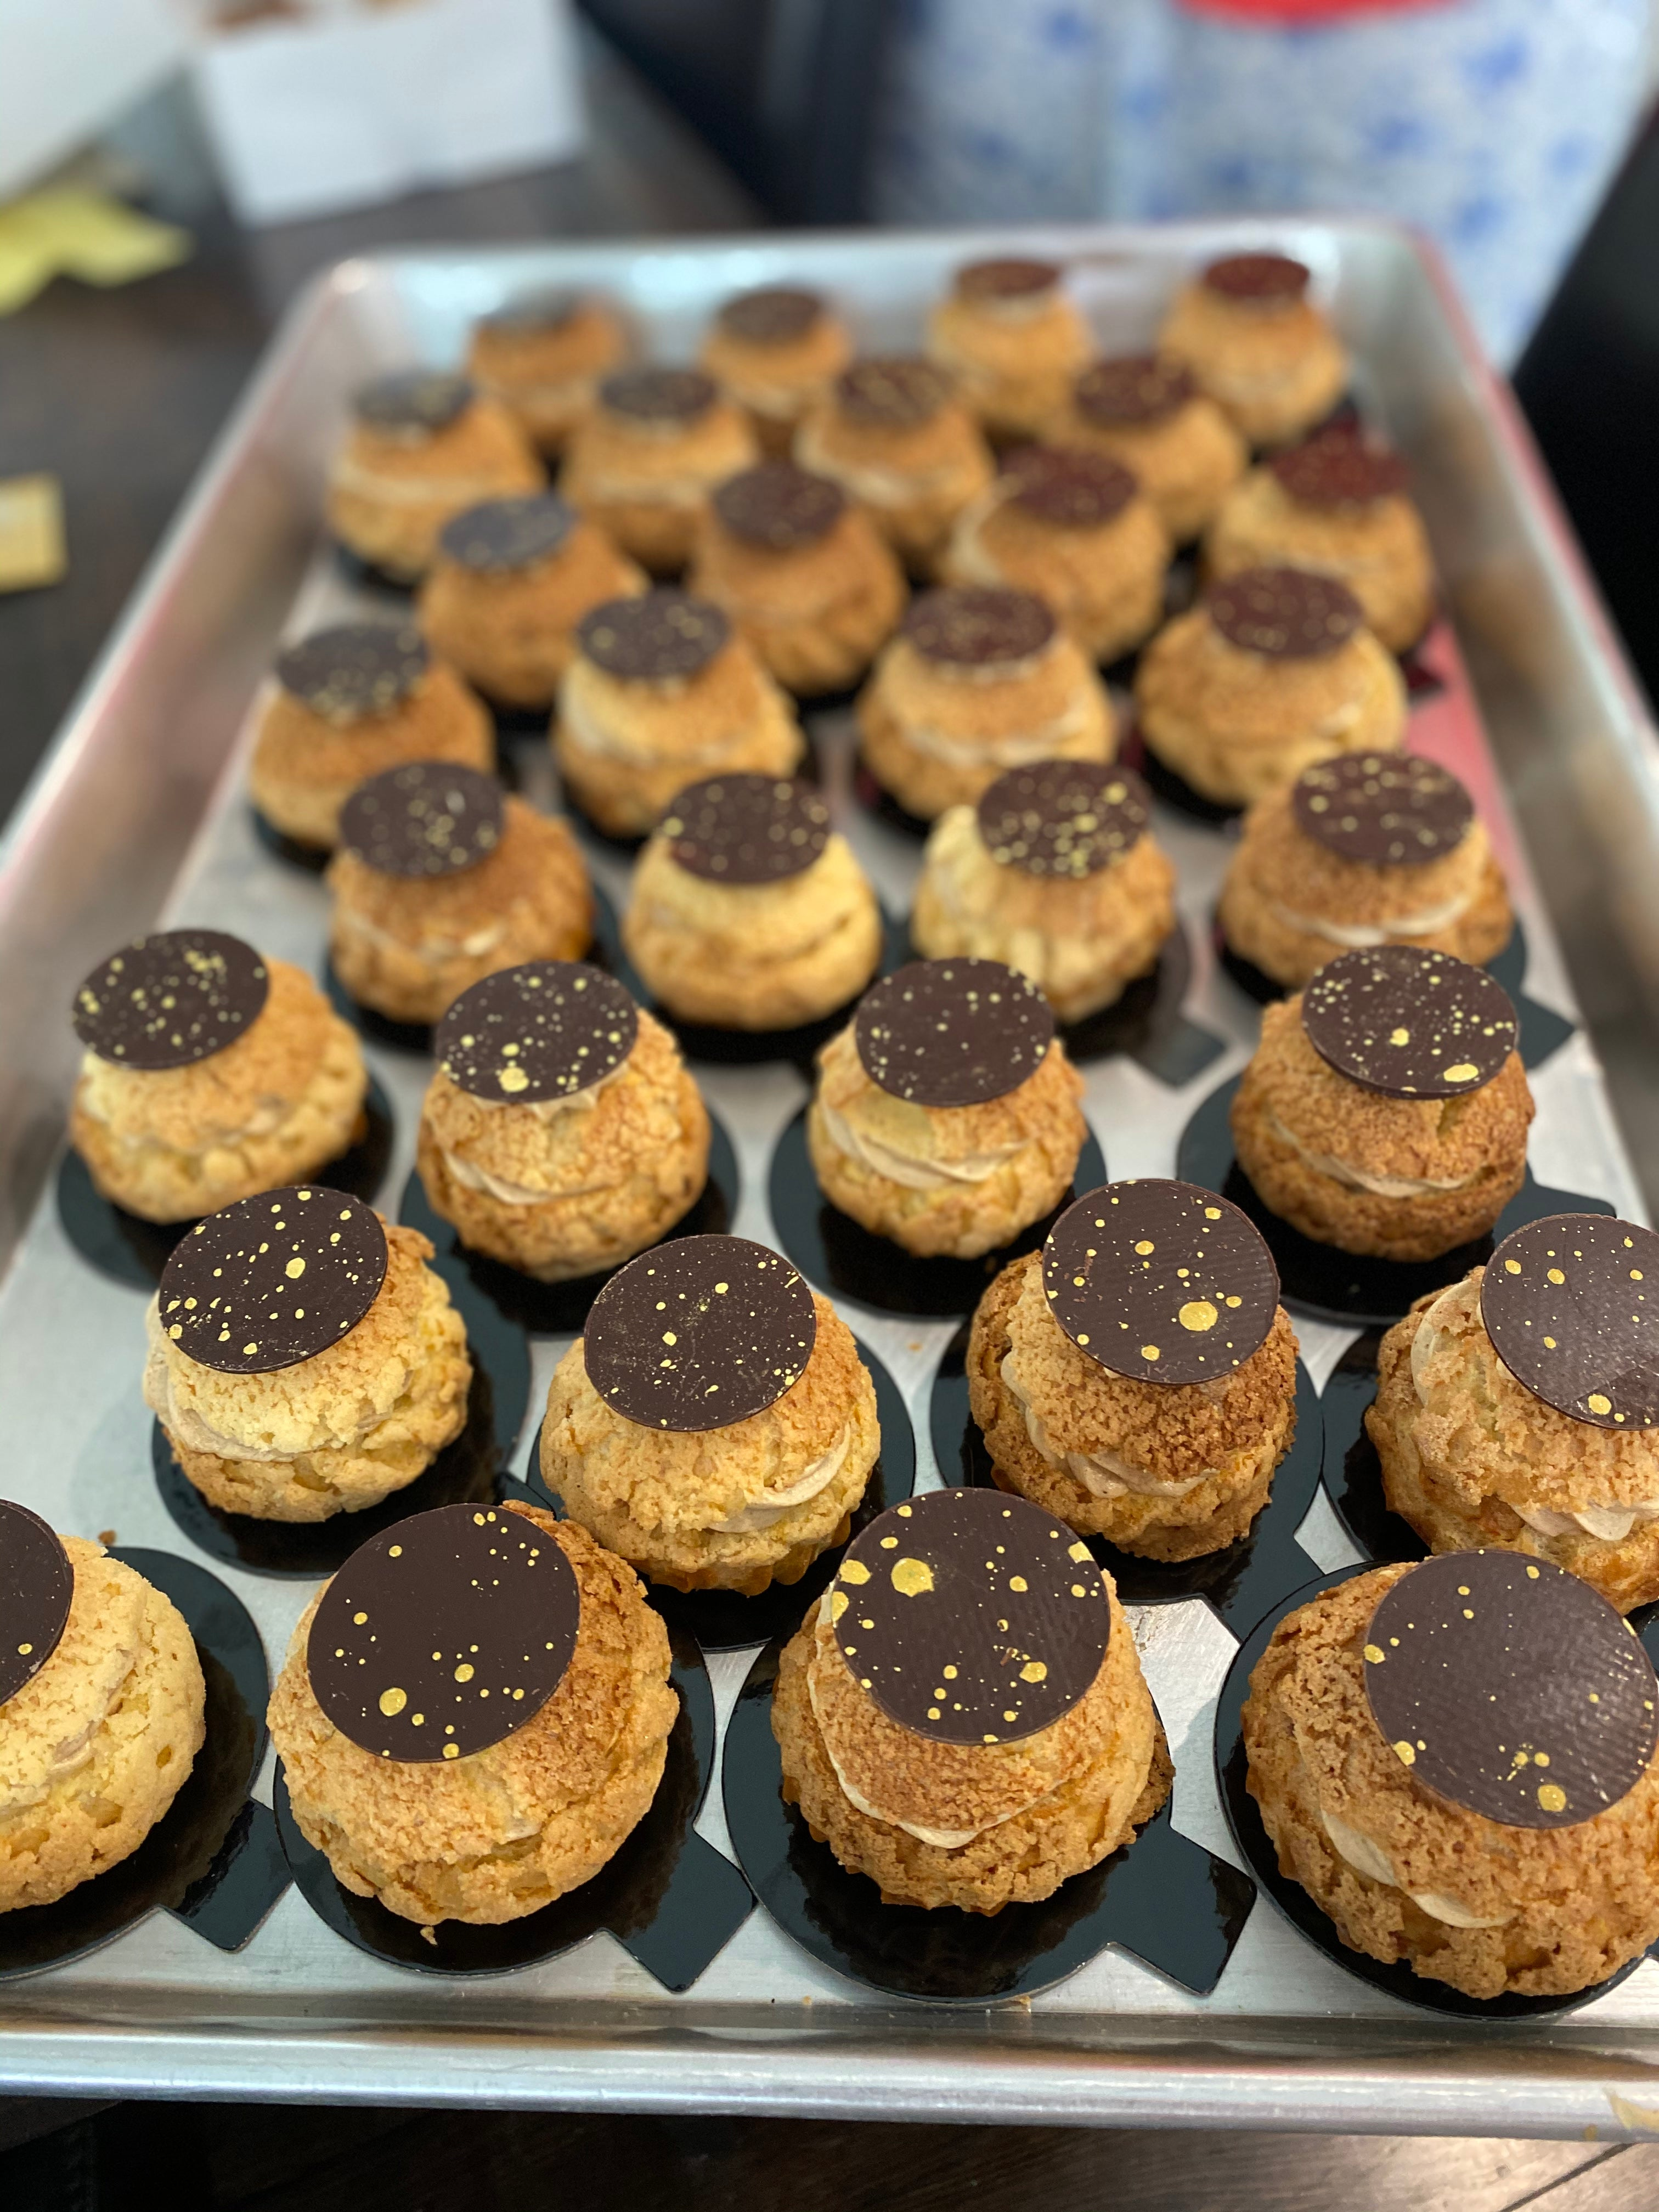 Friday 30 October - Choux